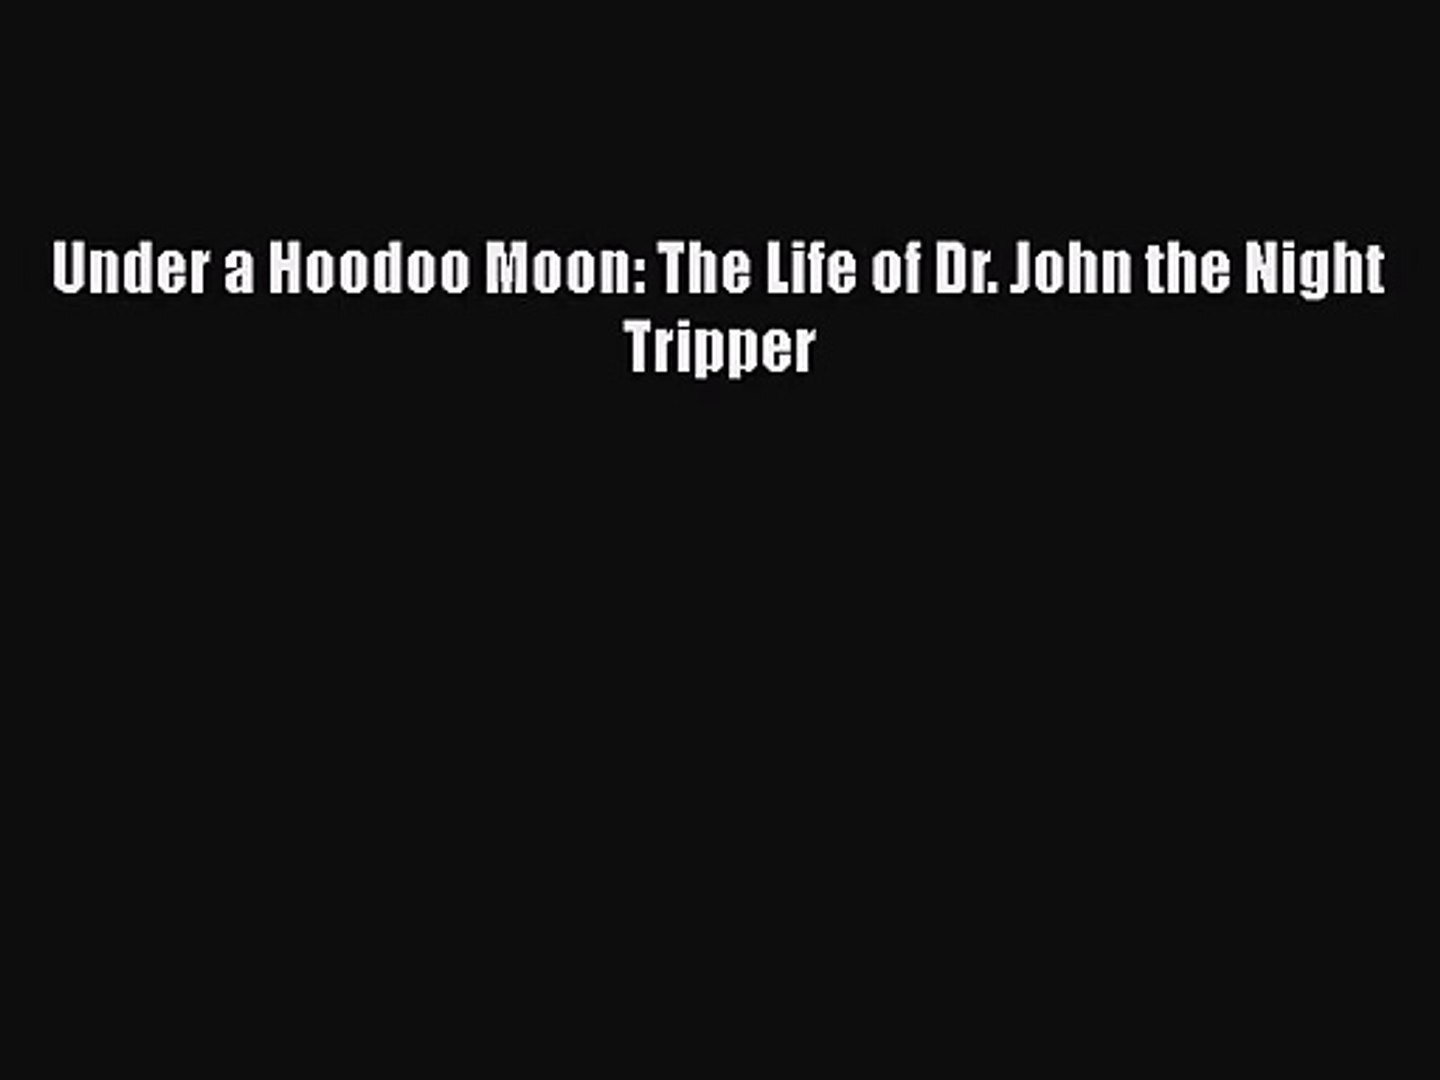 The Life of the Night Tripper Under a Hoodoo Moon